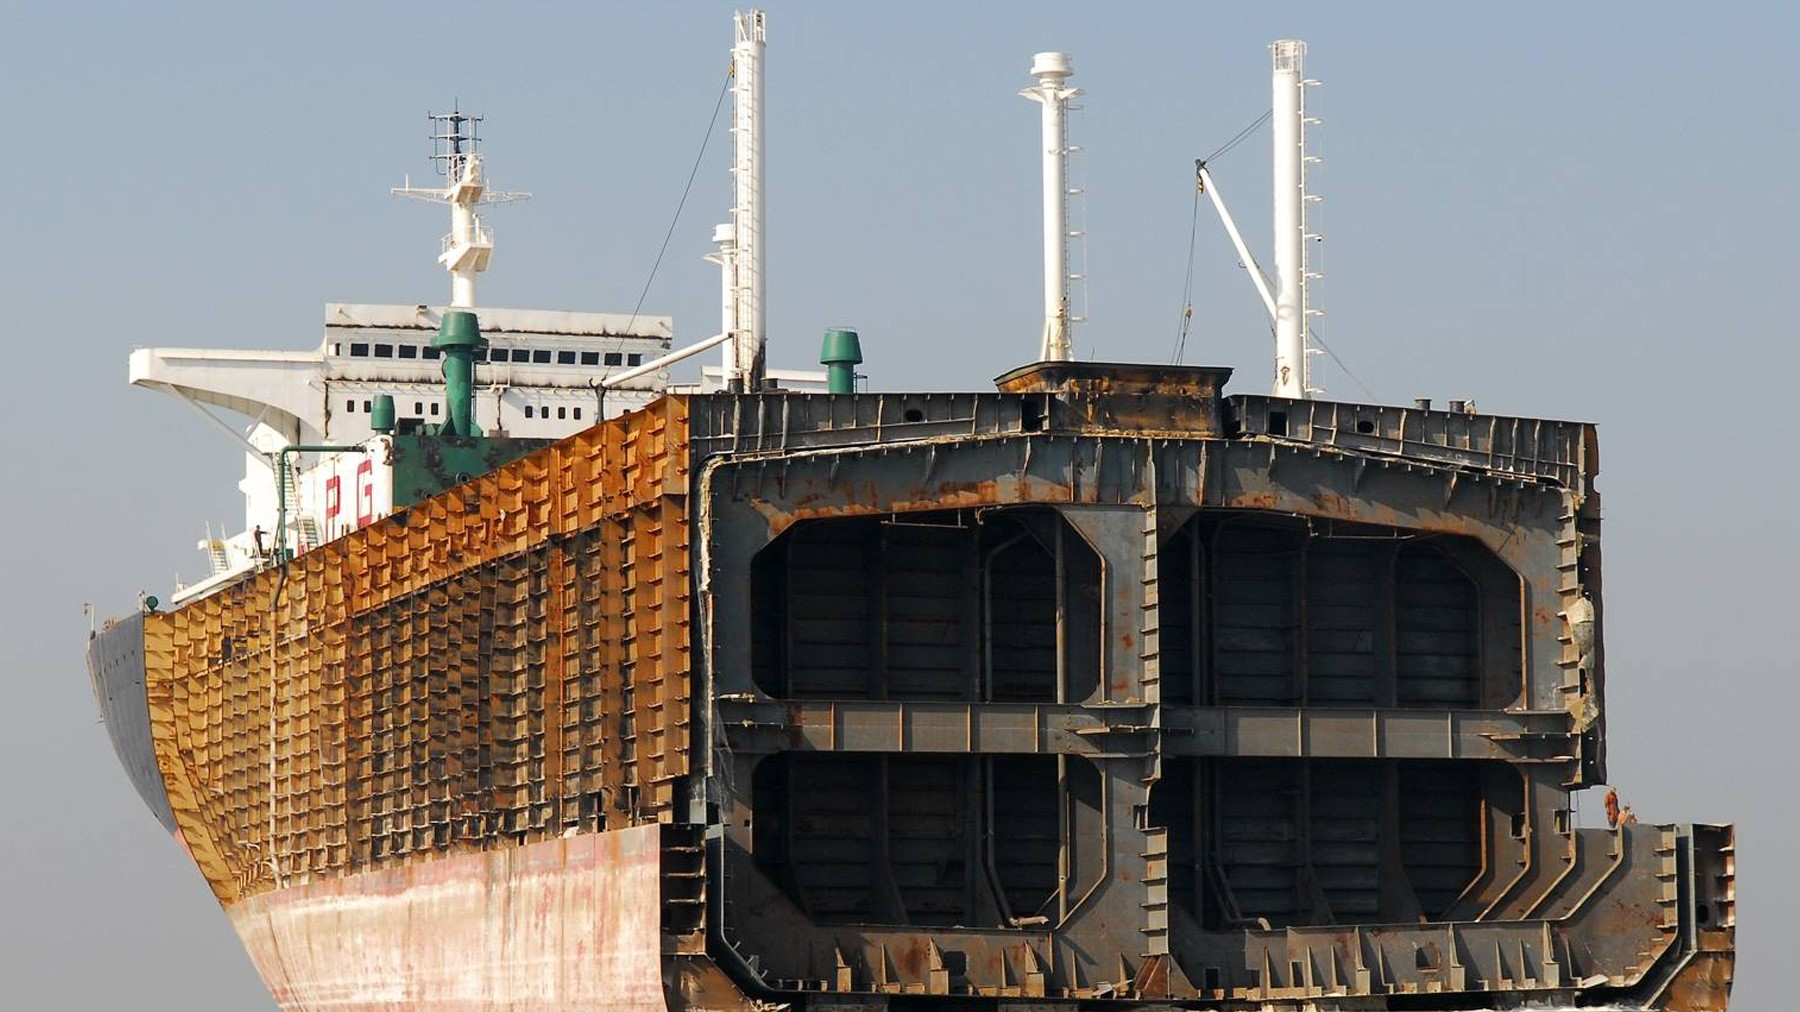 Ships from MSC, Evergreen and ZIM sold for demolition